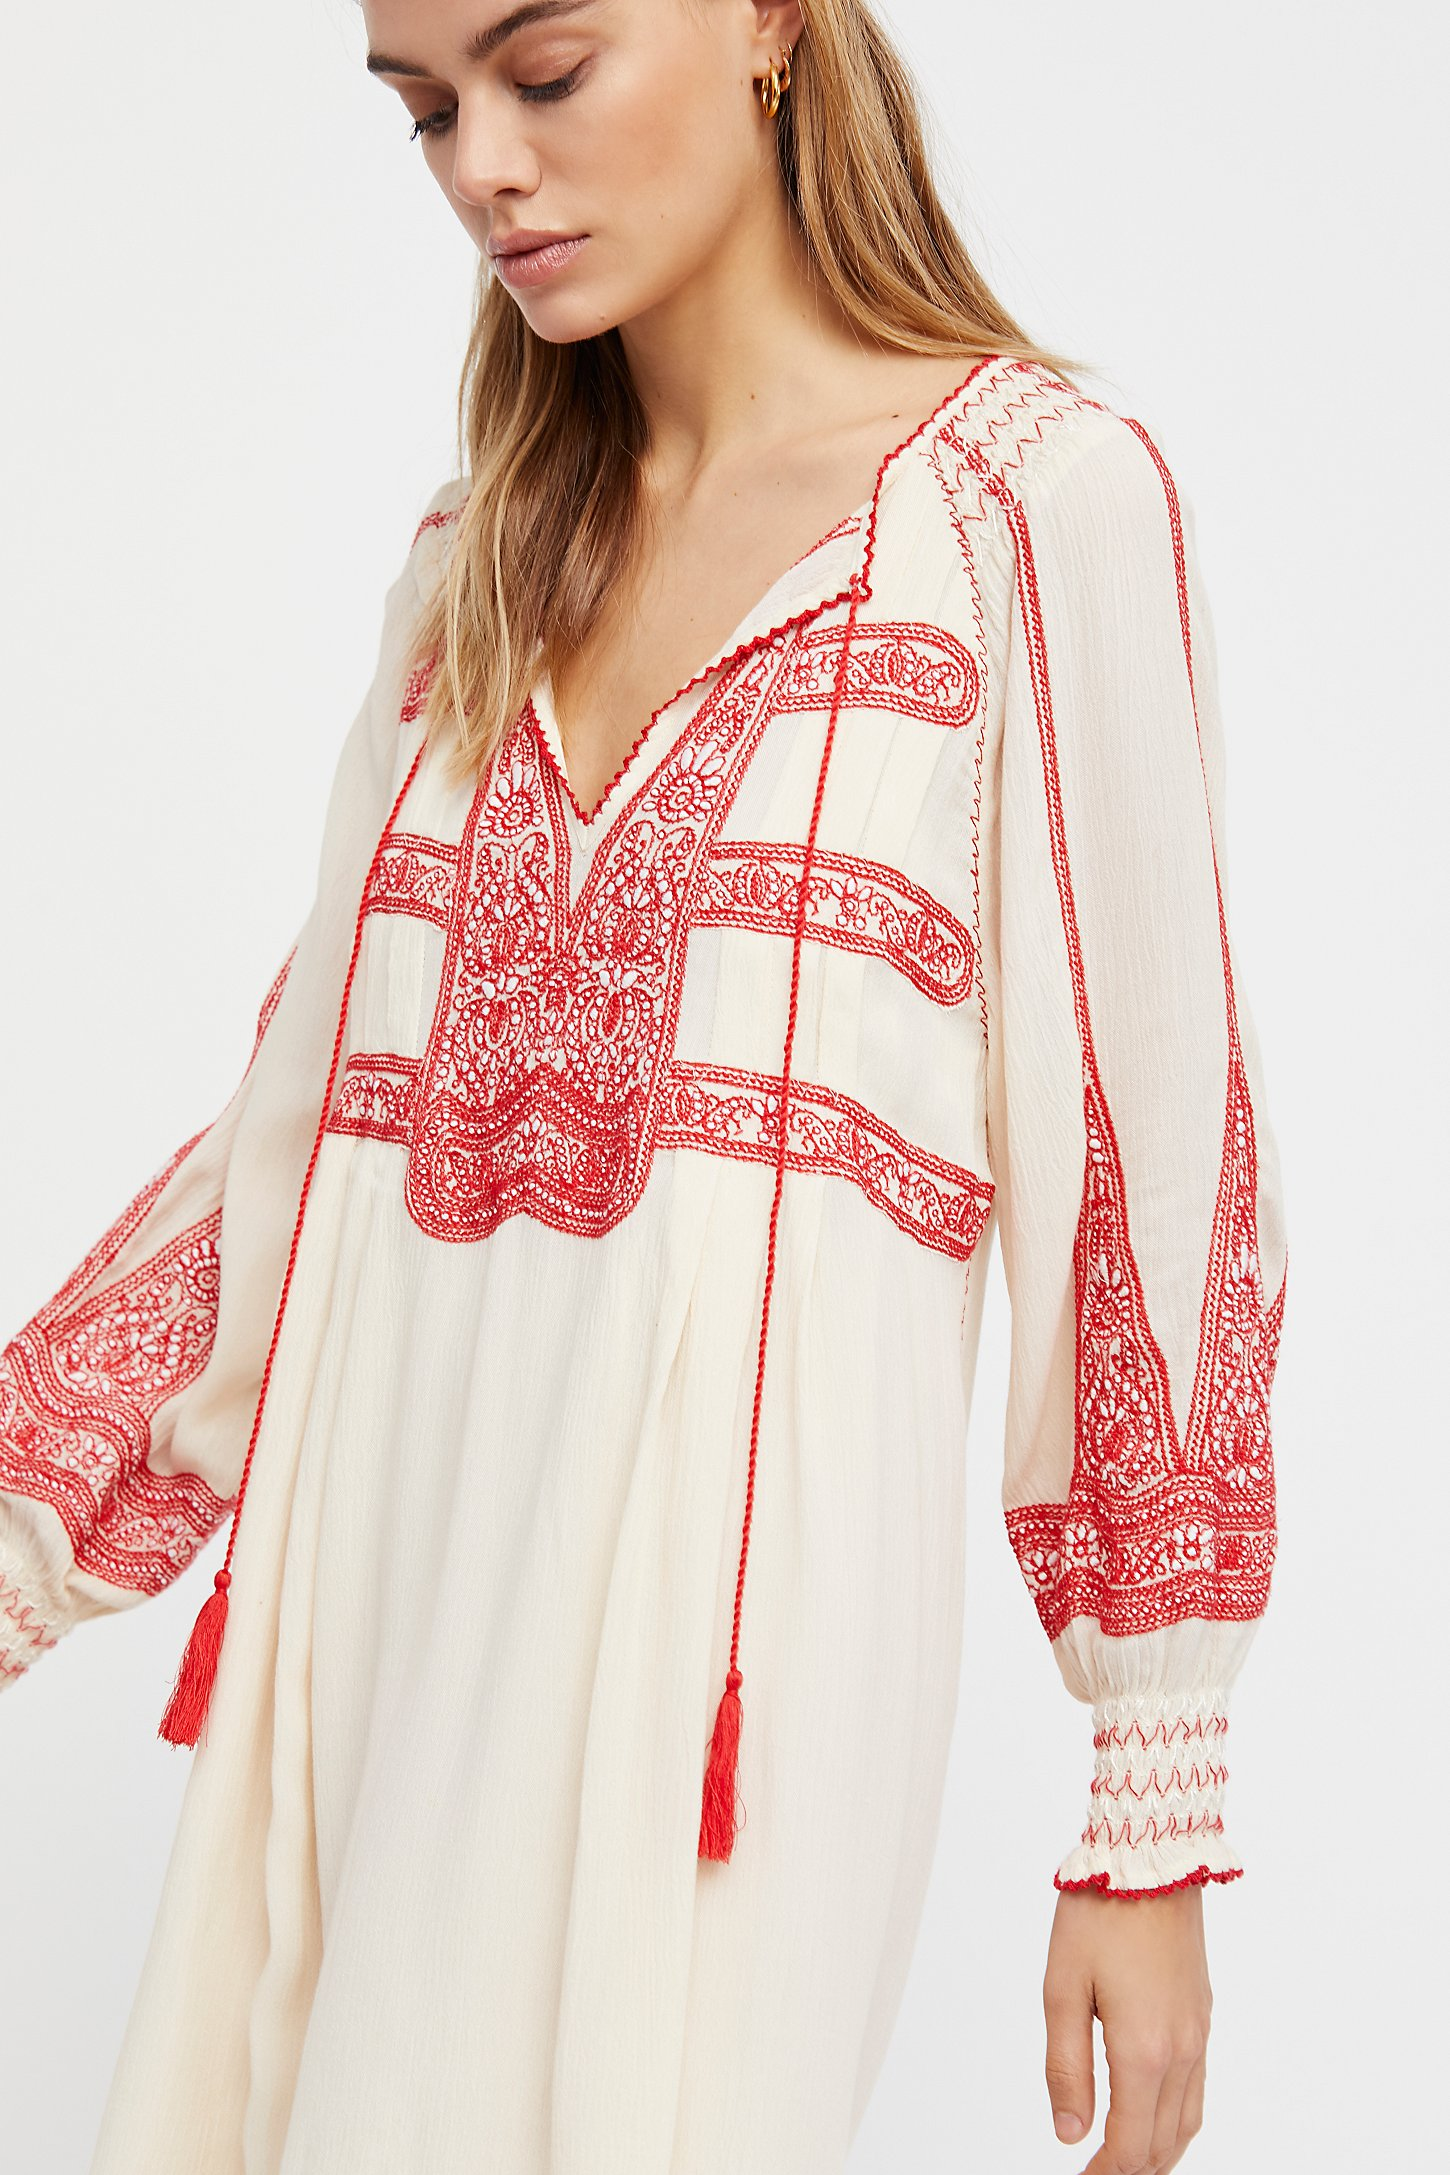 Wind Willow Embroidered Mini Dress - Ivory Free People